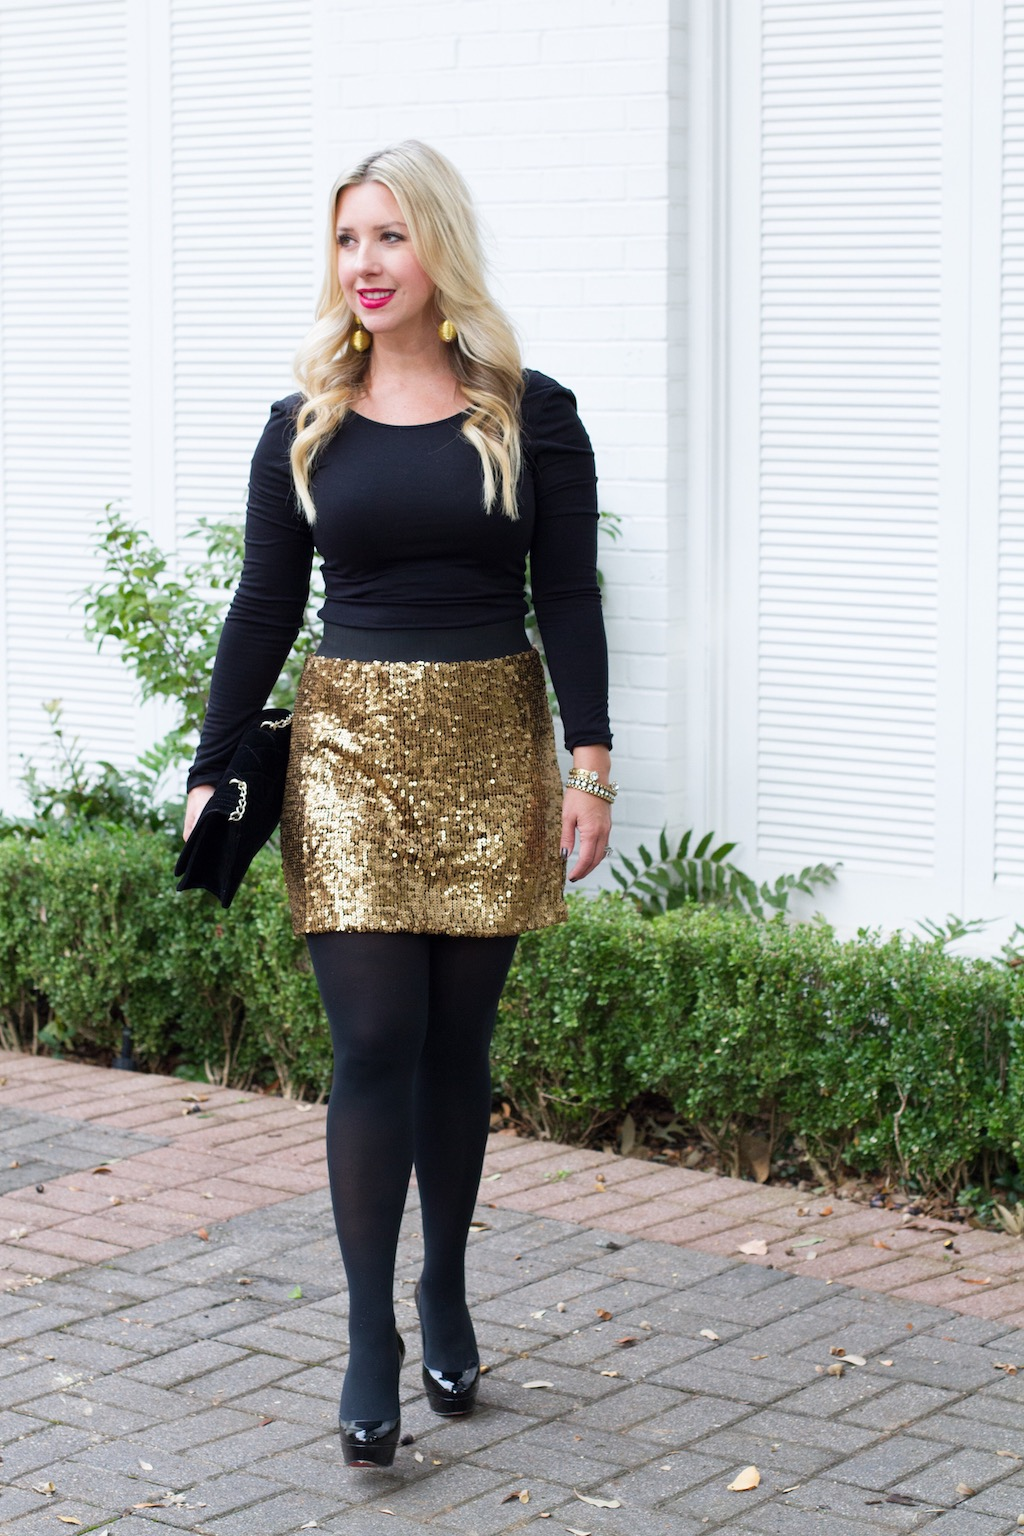 How To Style A Gold Sequin Skirt 2 Ways | The Darling Petite Diva